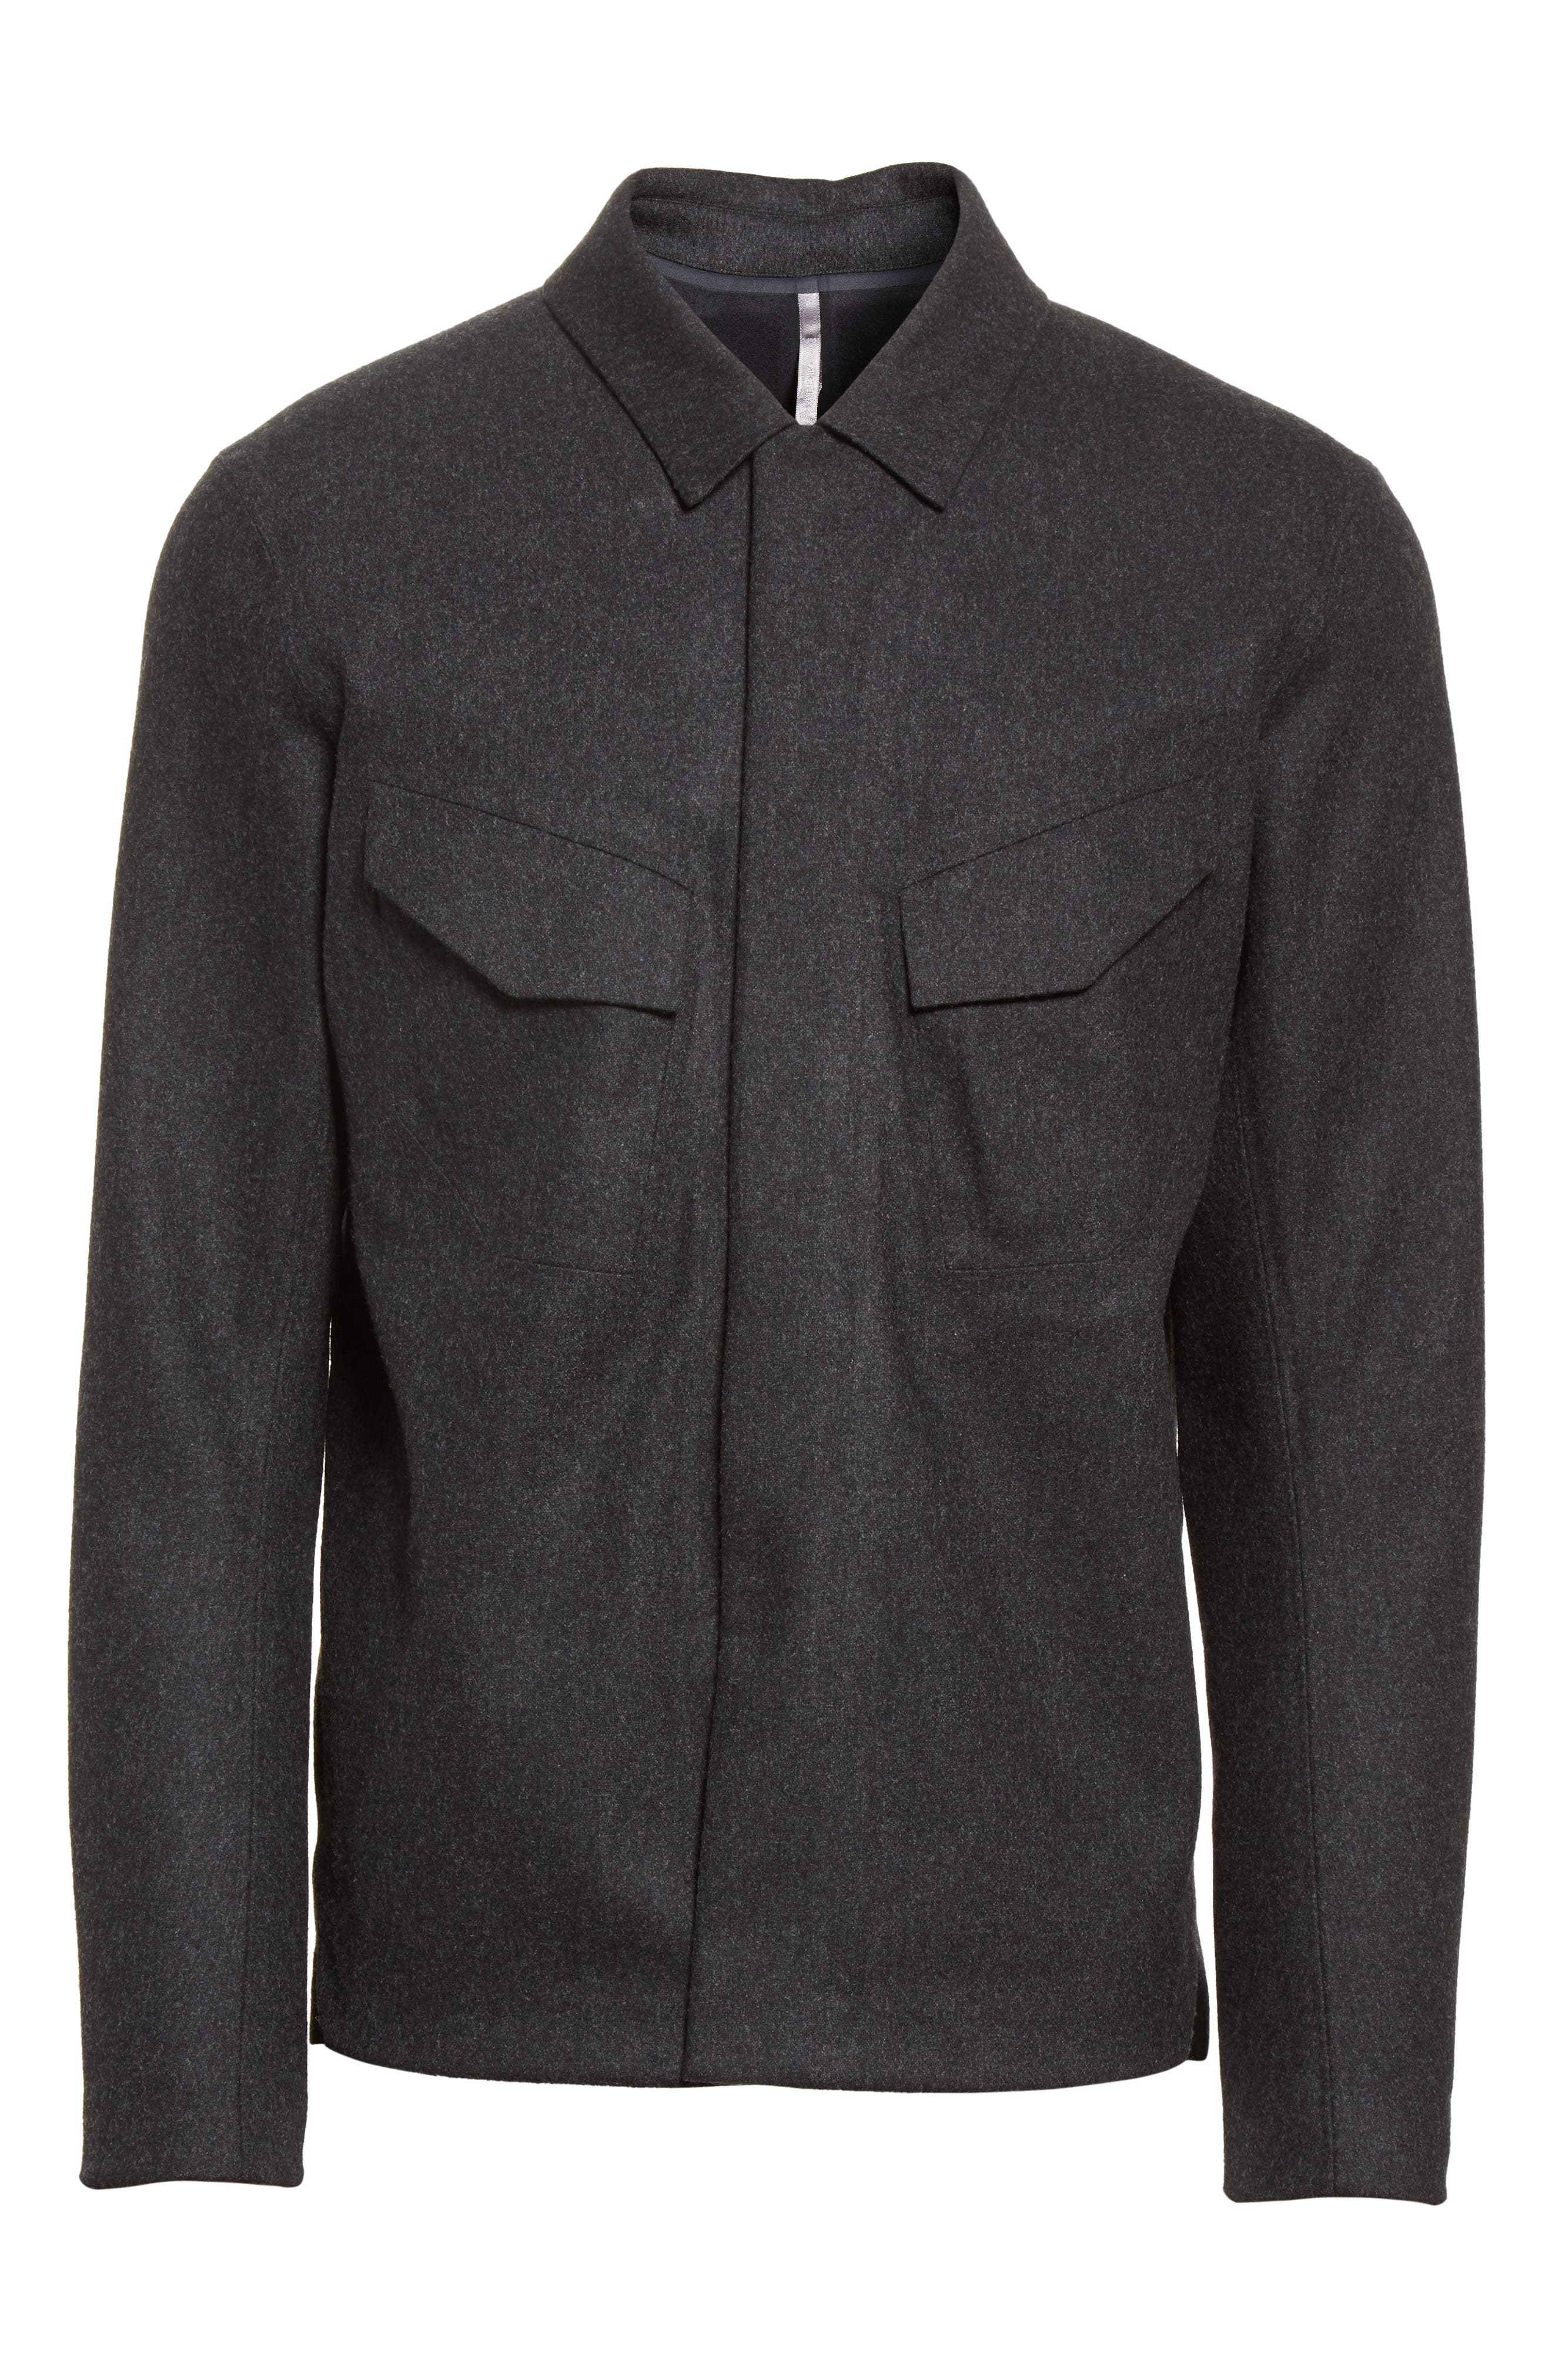 Haedn Shirt Jacket,                             Alternate thumbnail 6, color,                             Black Heather